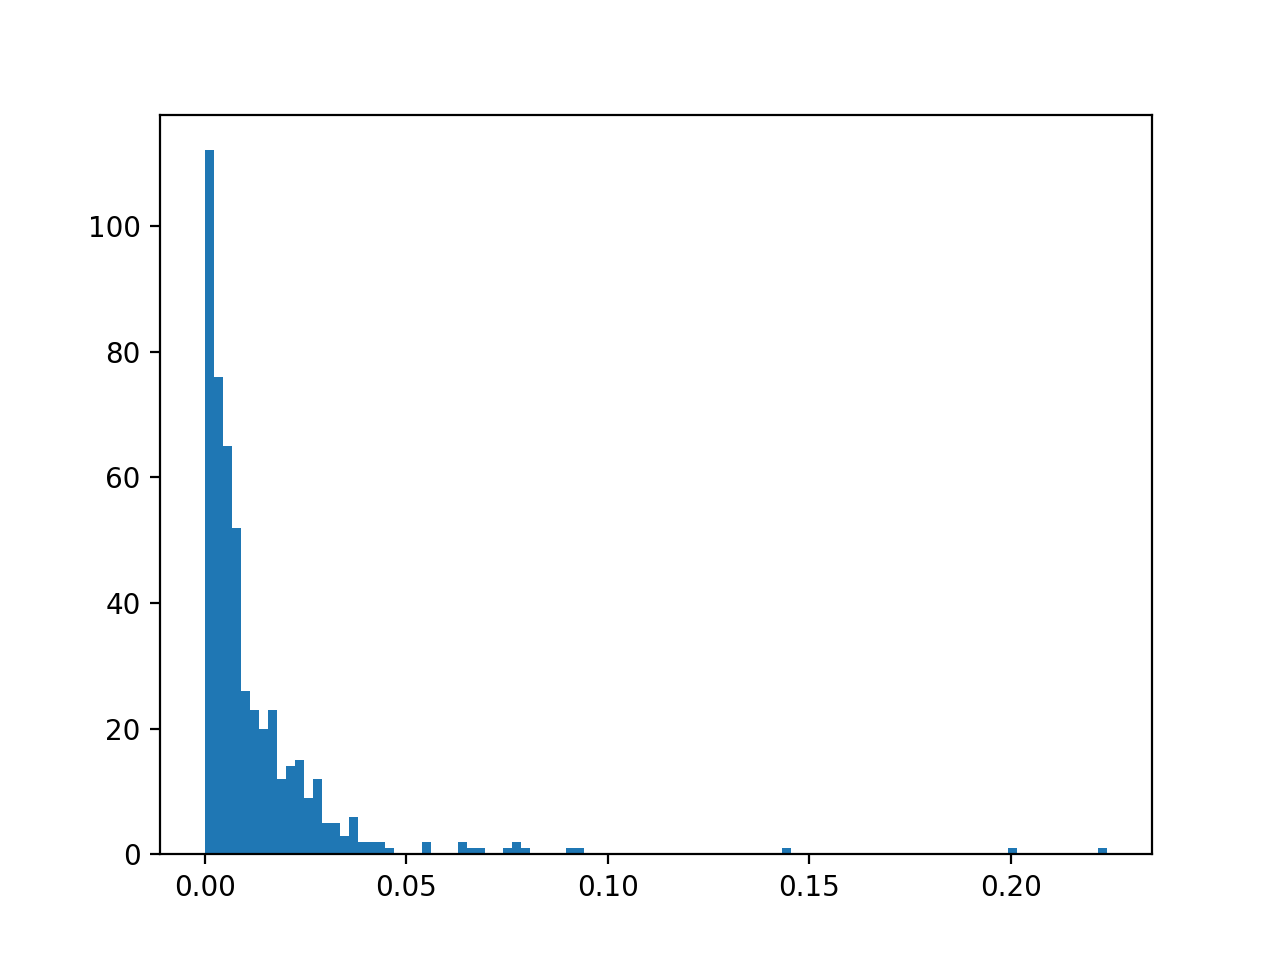 Histogram of Logistic Regression Predicted Probabilities for Class 1 for Imbalanced Classification